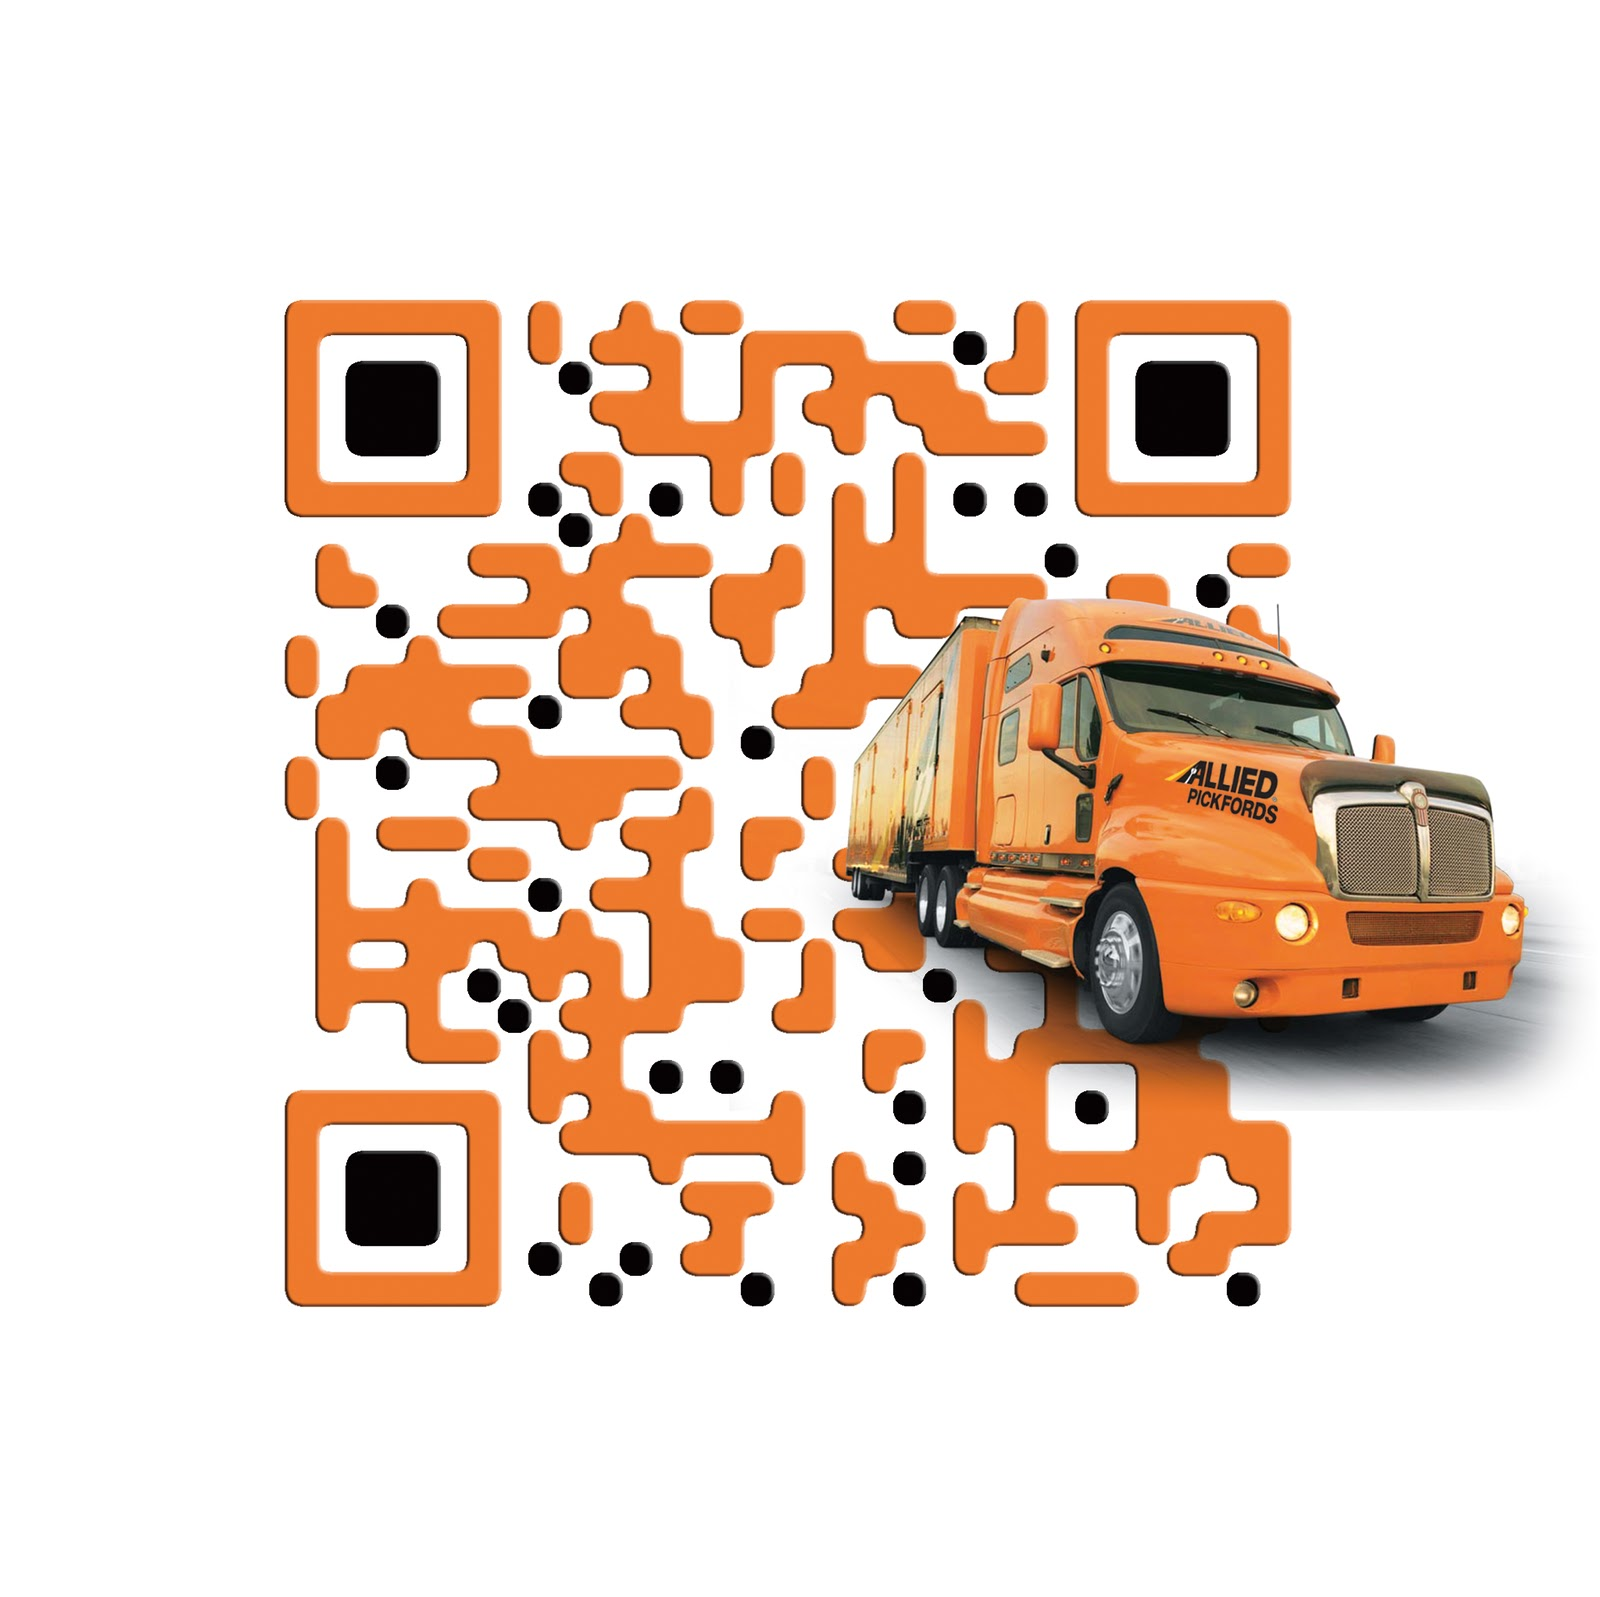 How do you create a QR code